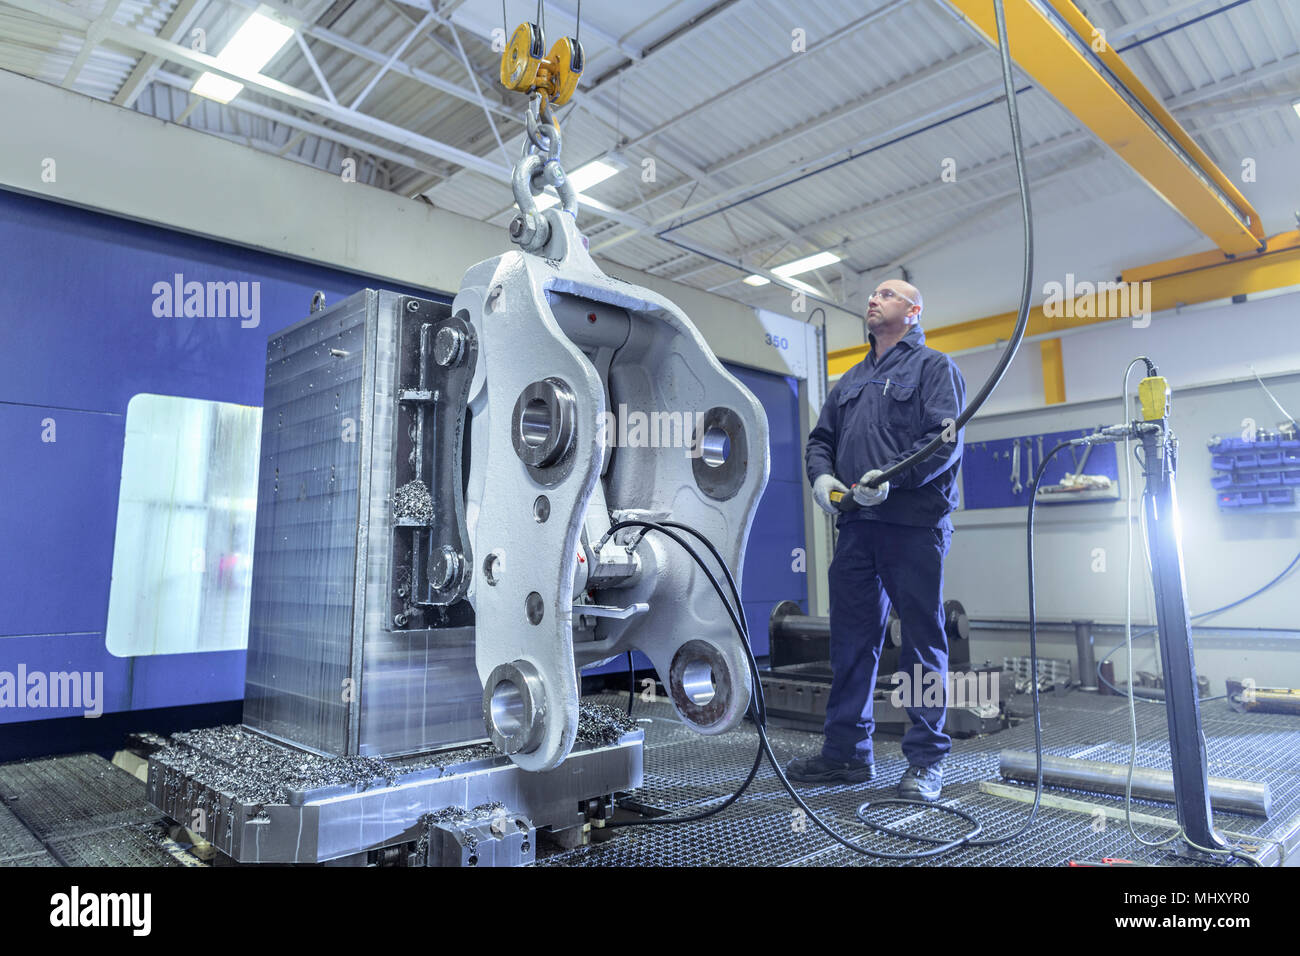 Engineer craning part into large CNC machine in engineering factory - Stock Image